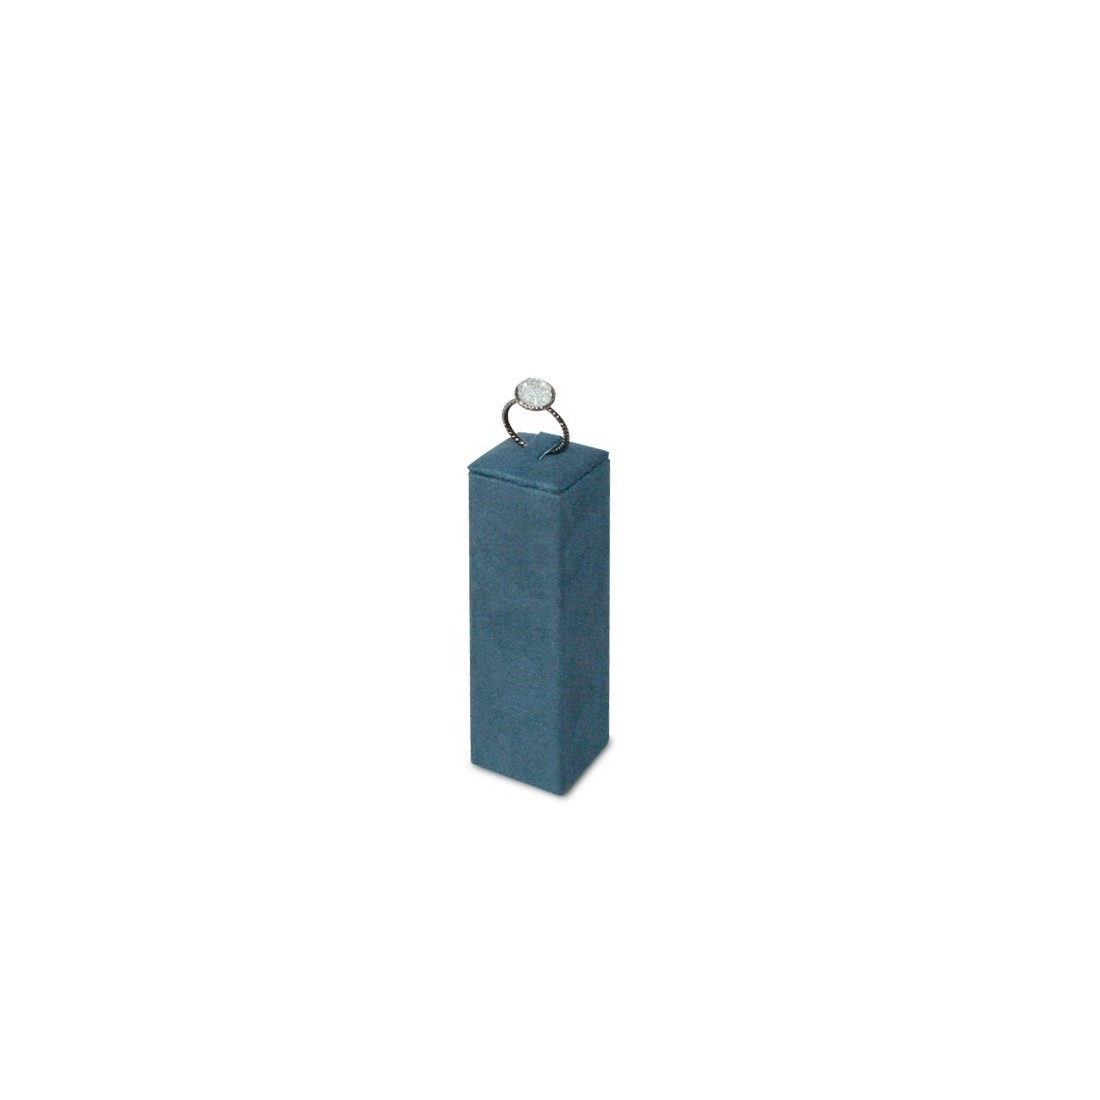 Display Stand for Rings, G